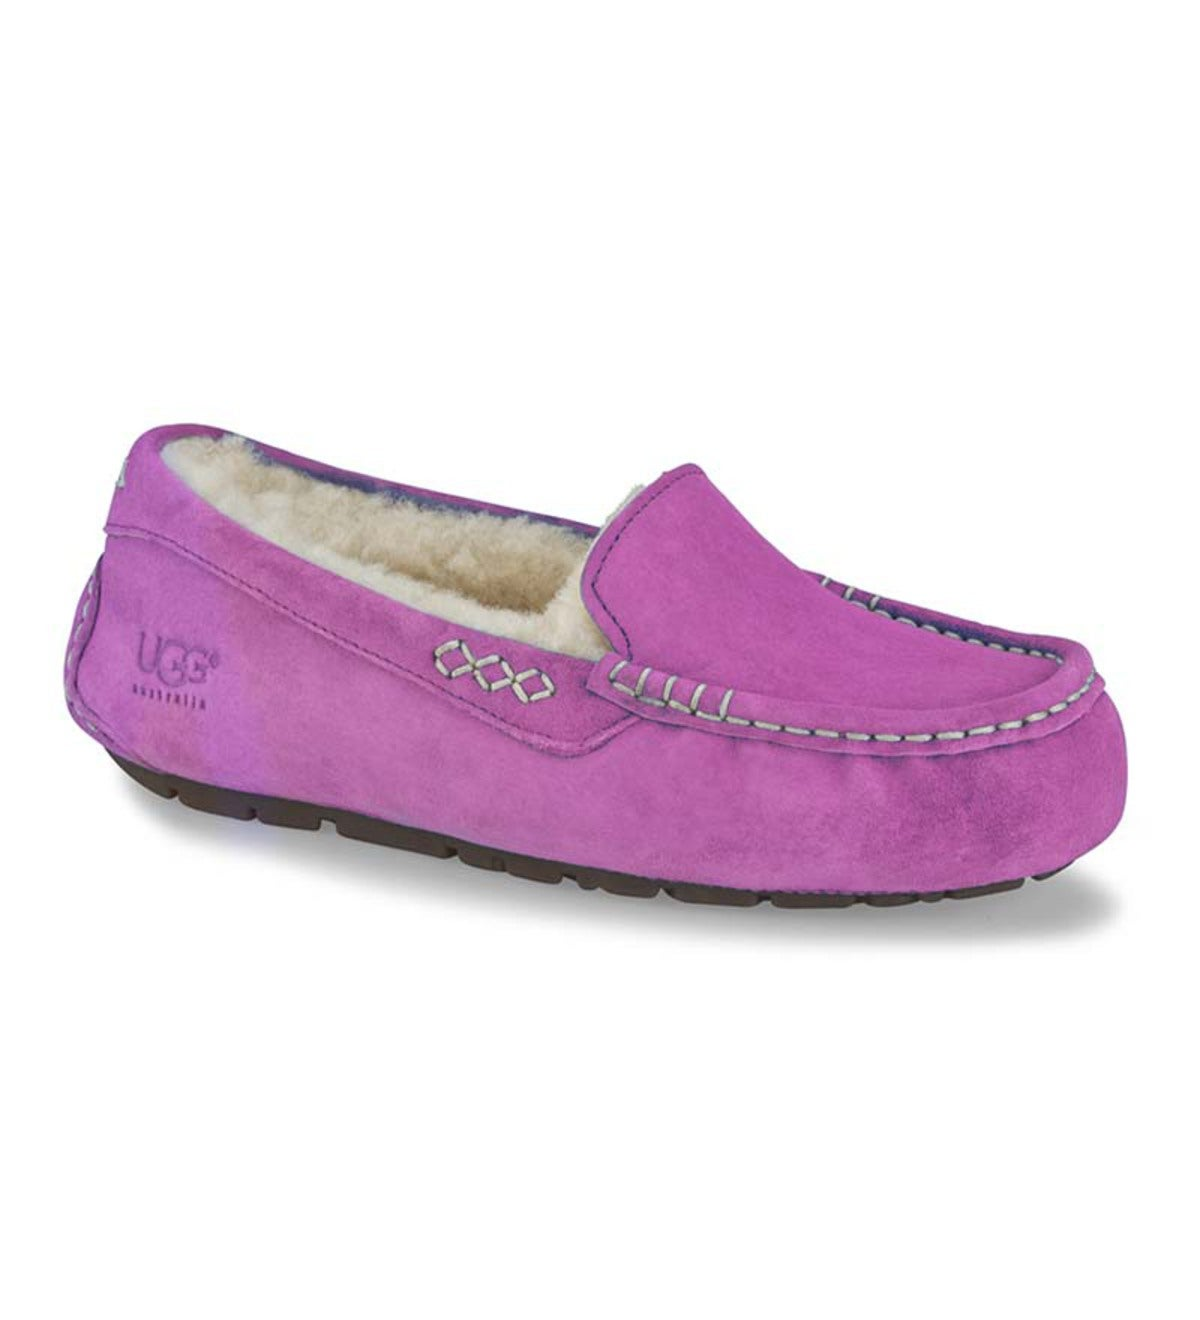 UGG Ansley Moccasin Slippers - Cactus Flower - Size 5